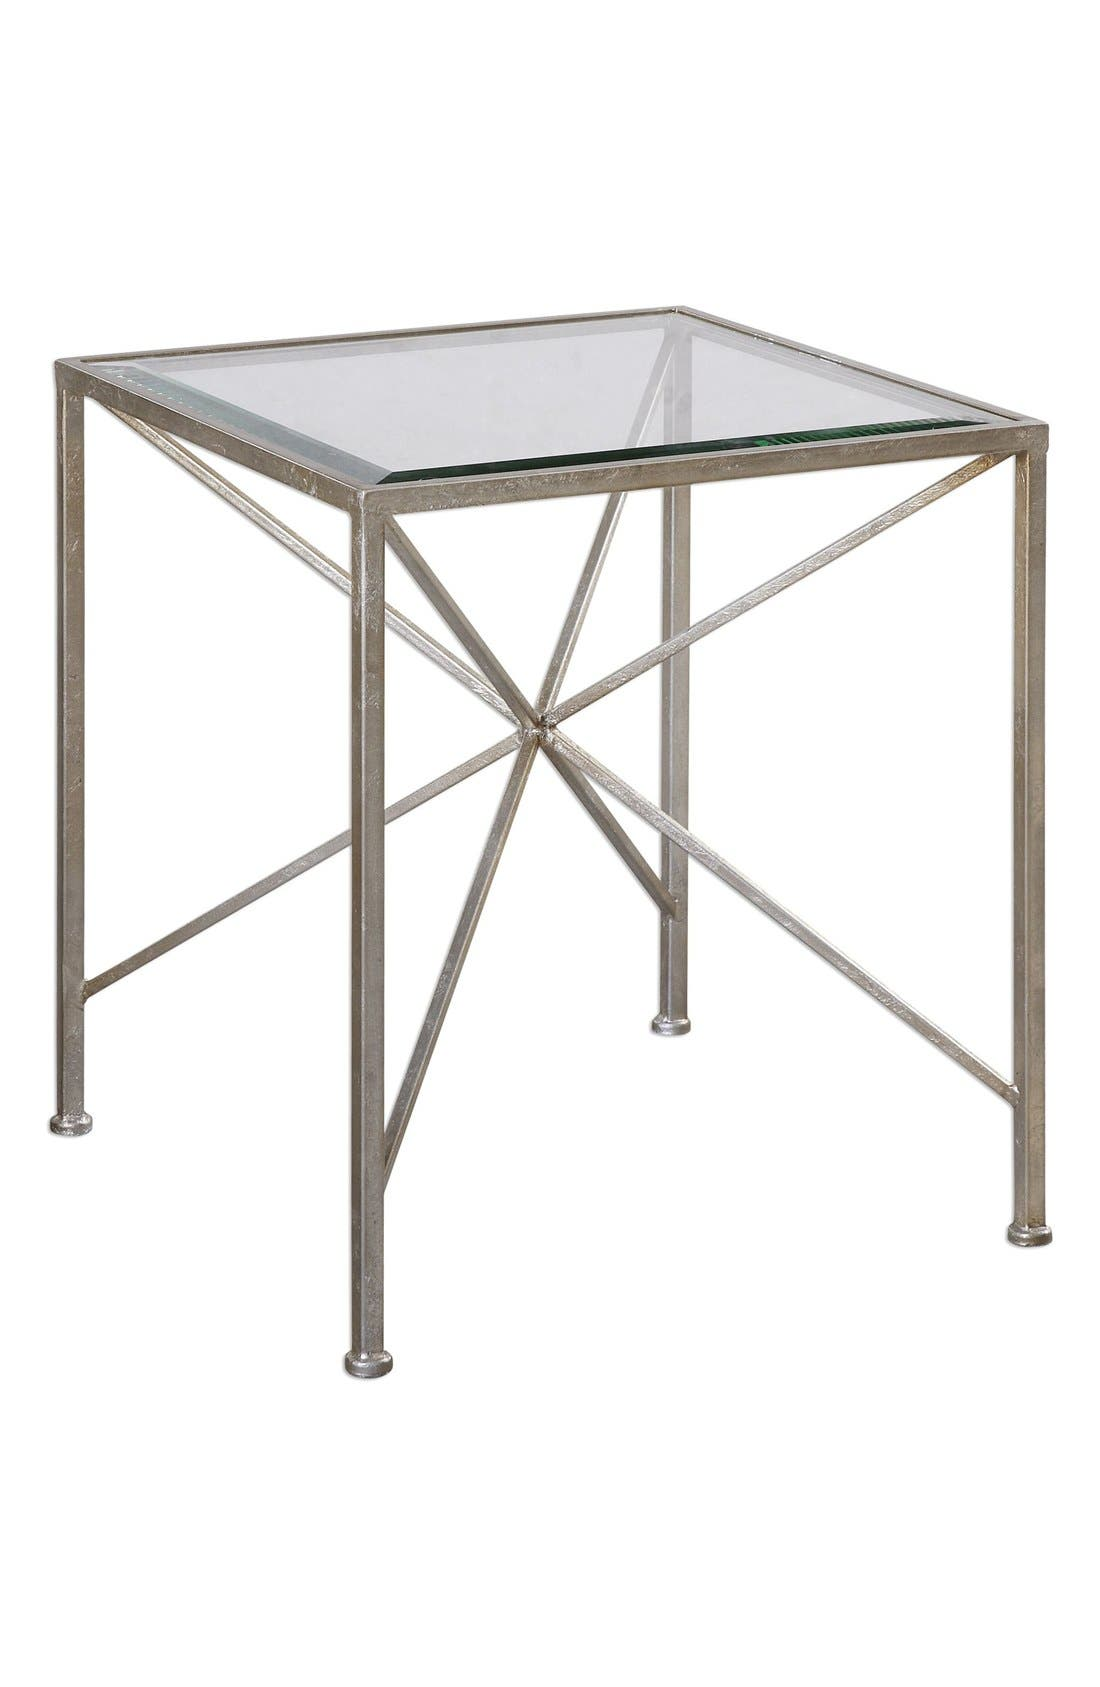 Main Image - Uttermost Antiqued Silvertone Cube Table